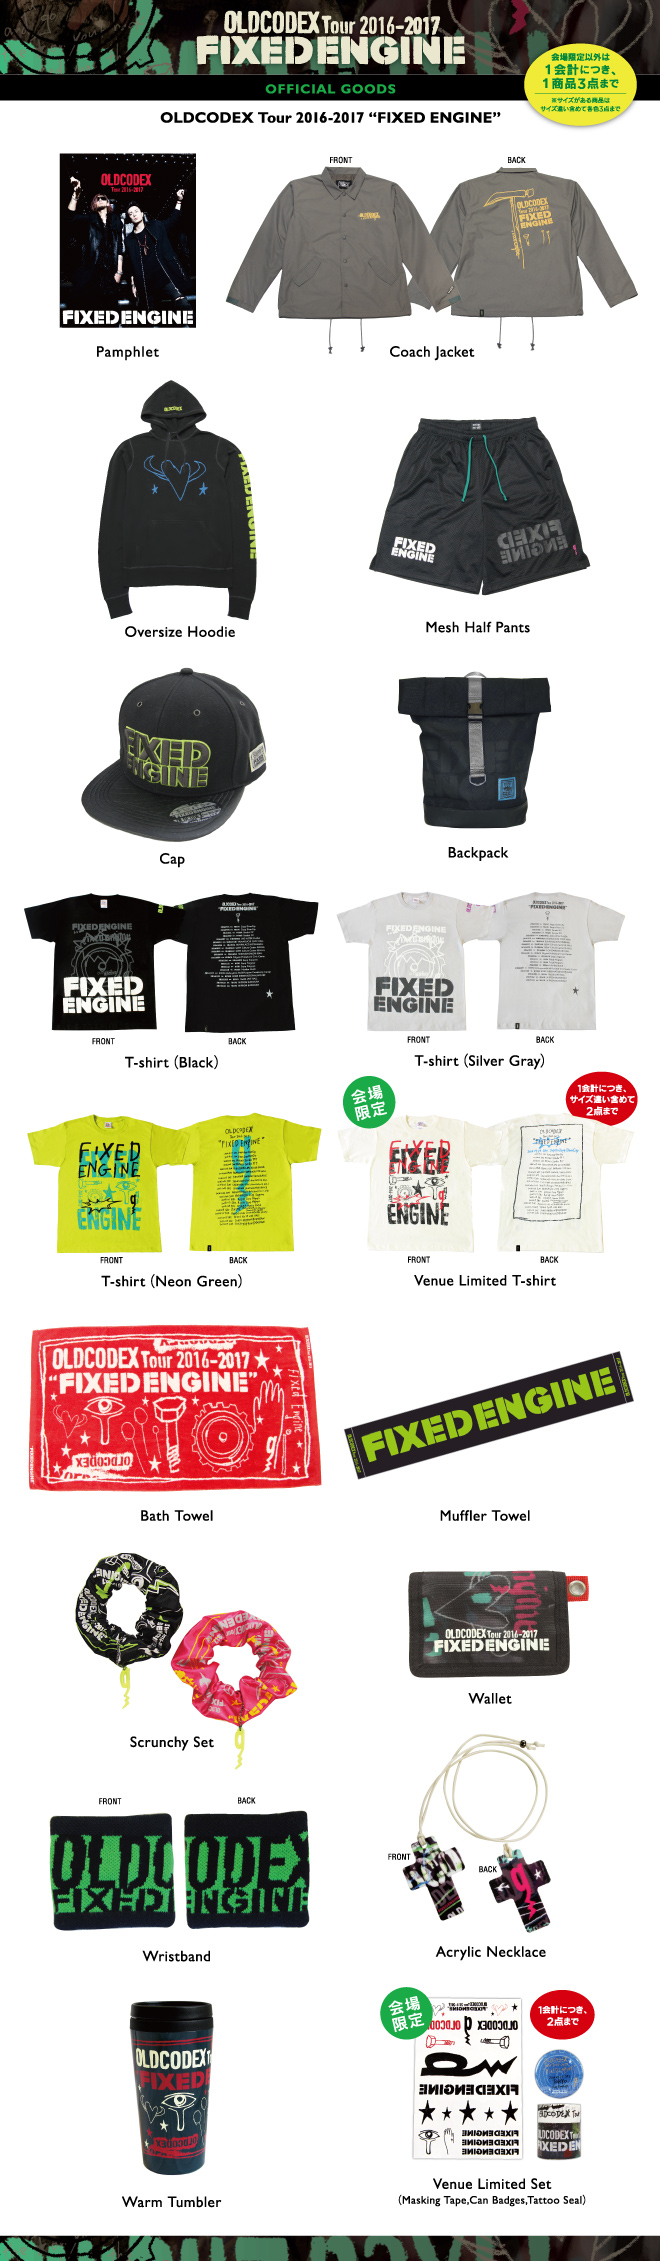 "OLDCODEX Tour 2016-2017 ""FIXED ENGINE"" OFFICIAL GOODS"